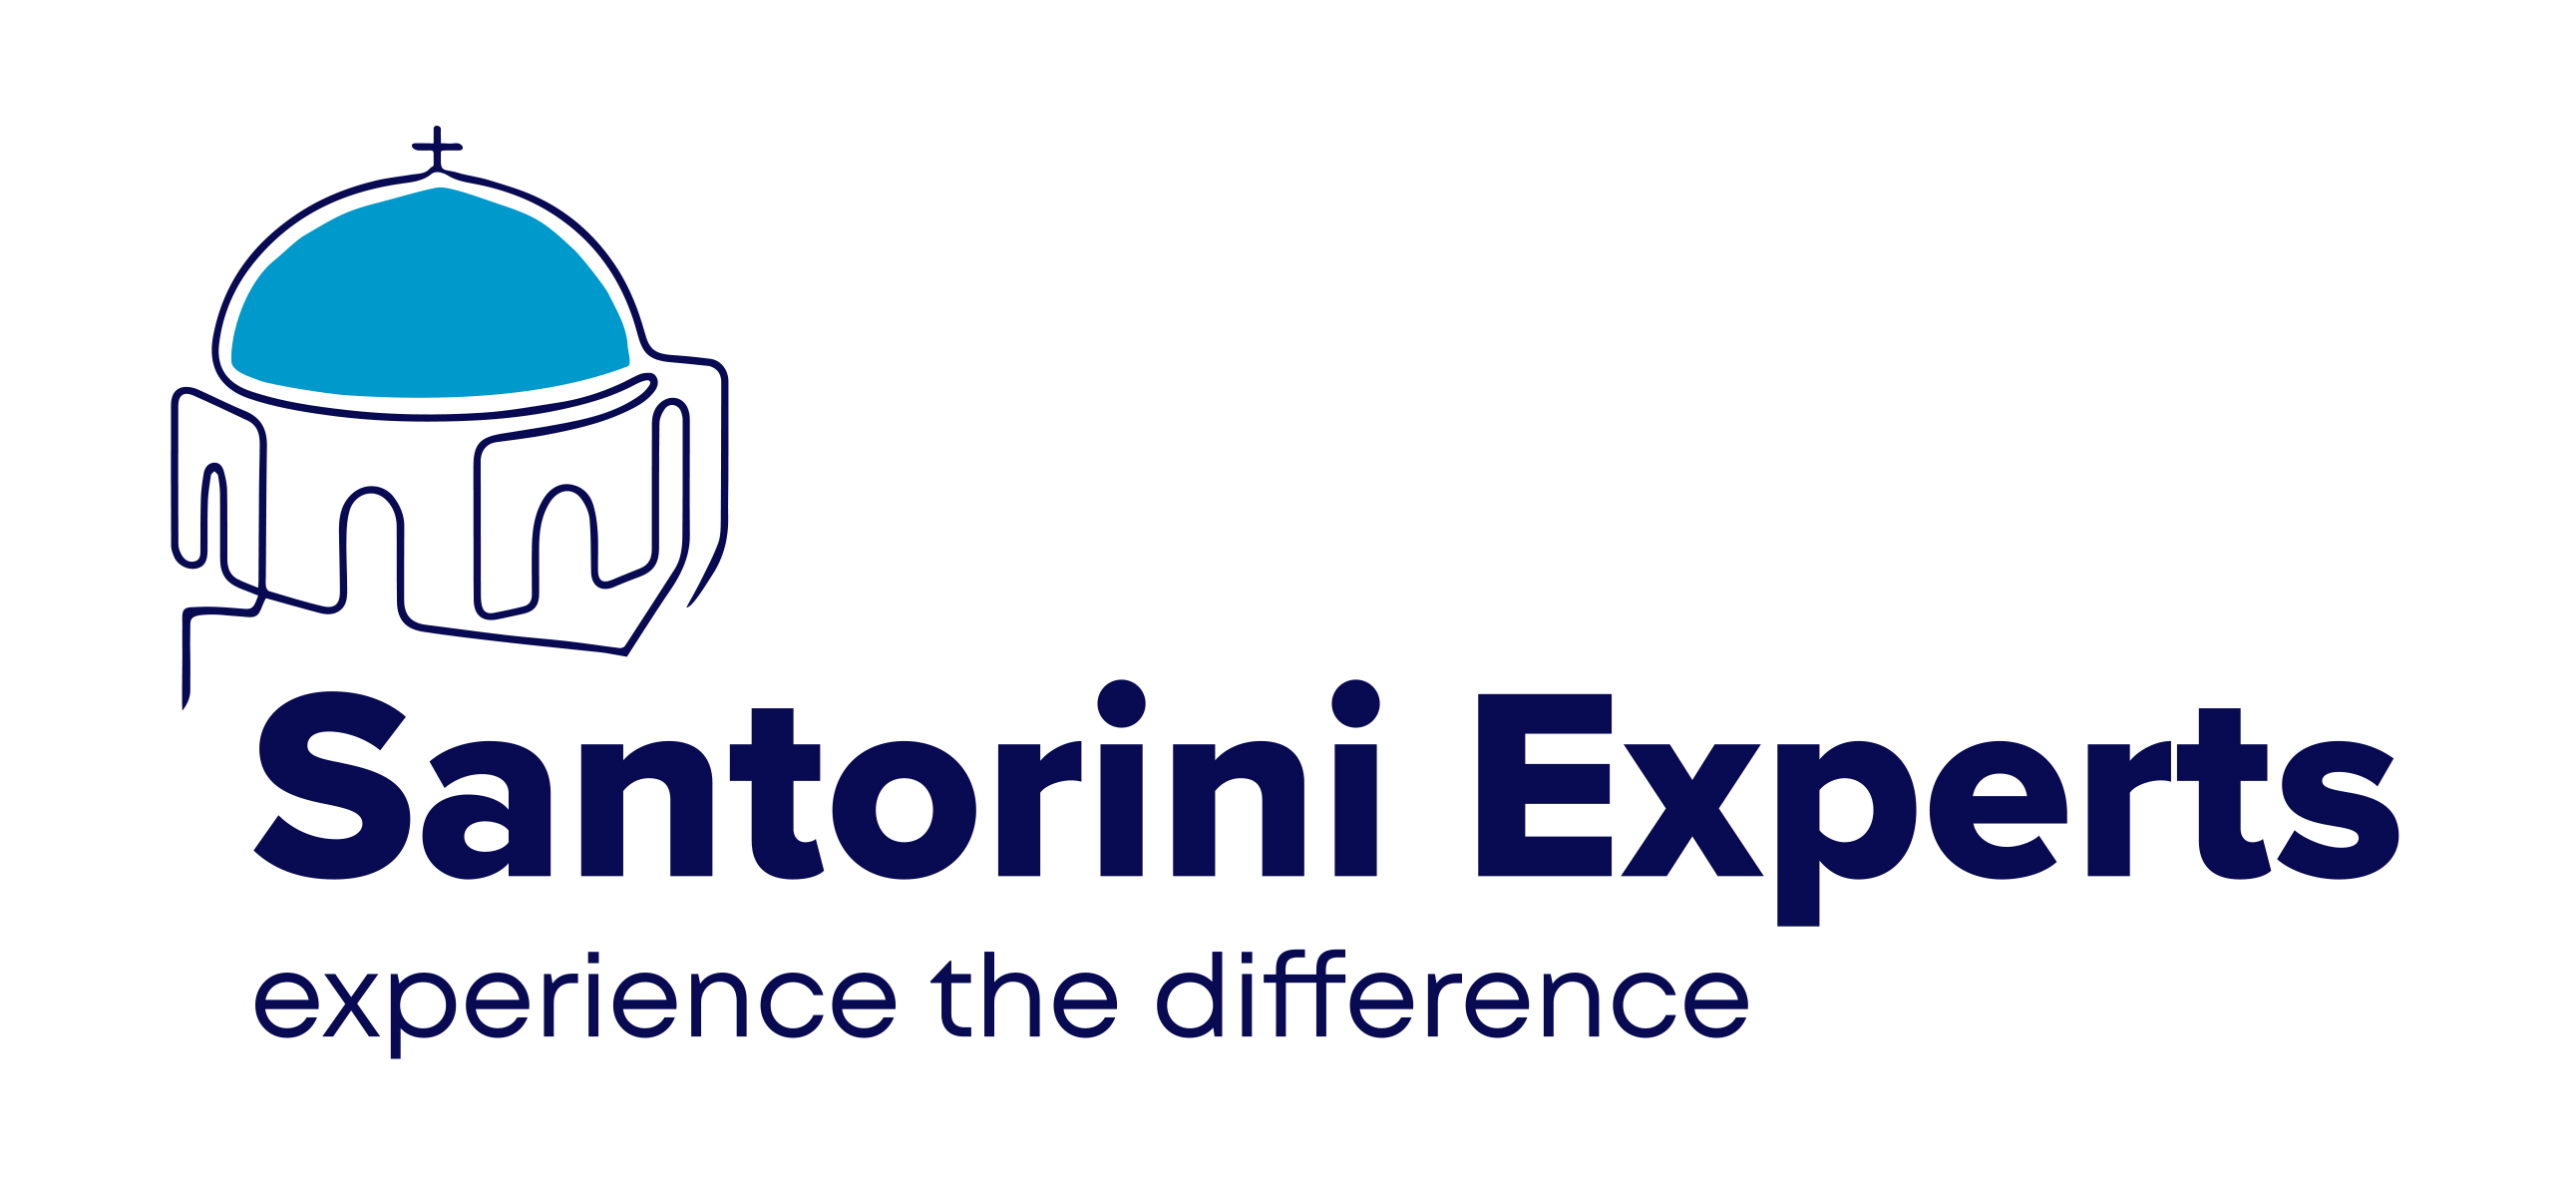 Santorini Experts logo